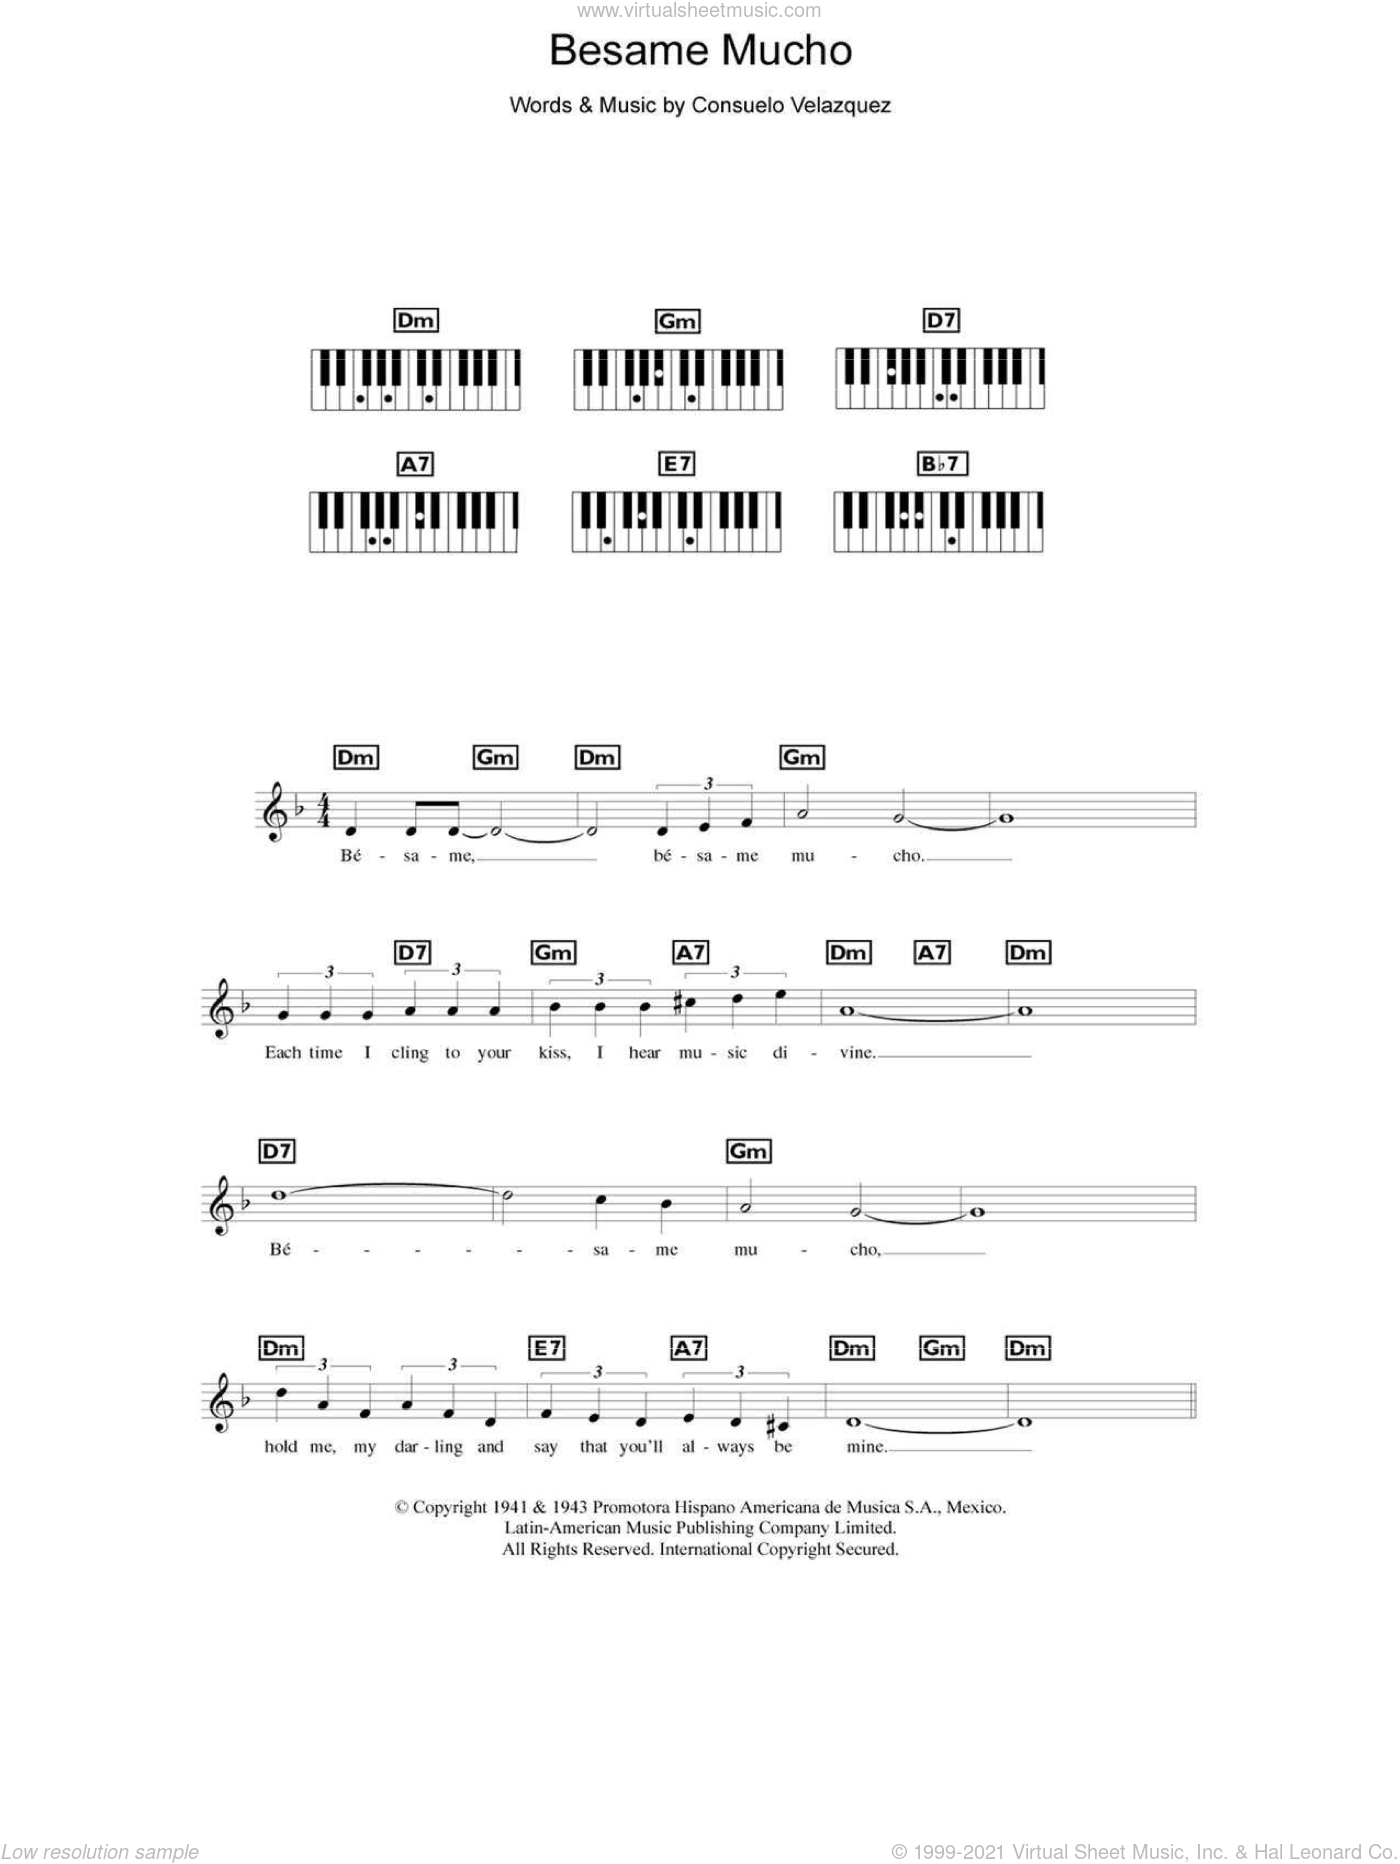 Besame Mucho (Kiss Me Much) sheet music for piano solo (chords, lyrics, melody) by Consuelo Velazquez